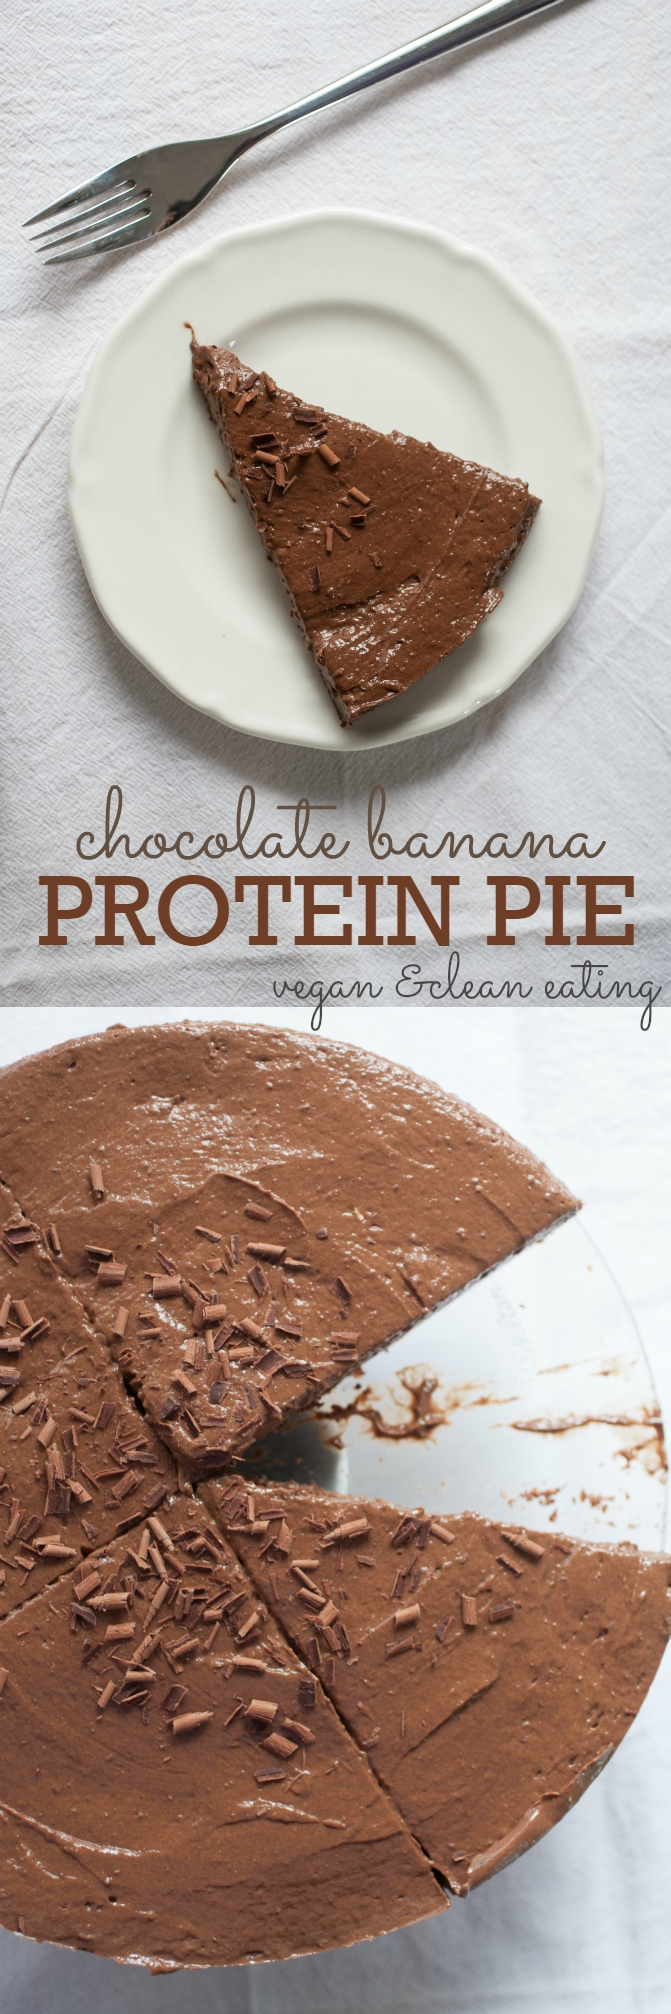 Produce On Parade - Chocolate Banana Protein Pie - This is a fantastic clean-eating dessert as well as the perfect post-workout snack! At just over 200 calories and 16 grams of protein per slice (with 3 scoops of powder), this vegan pie is a breeze to make and will definitely satisfy those chocolate cravings in a healthy and nutritious fashion. Keep slices in the freezer for whenever you need a boost! Sweetened only with dates and bananas, there's no flour or oil in this pie either!